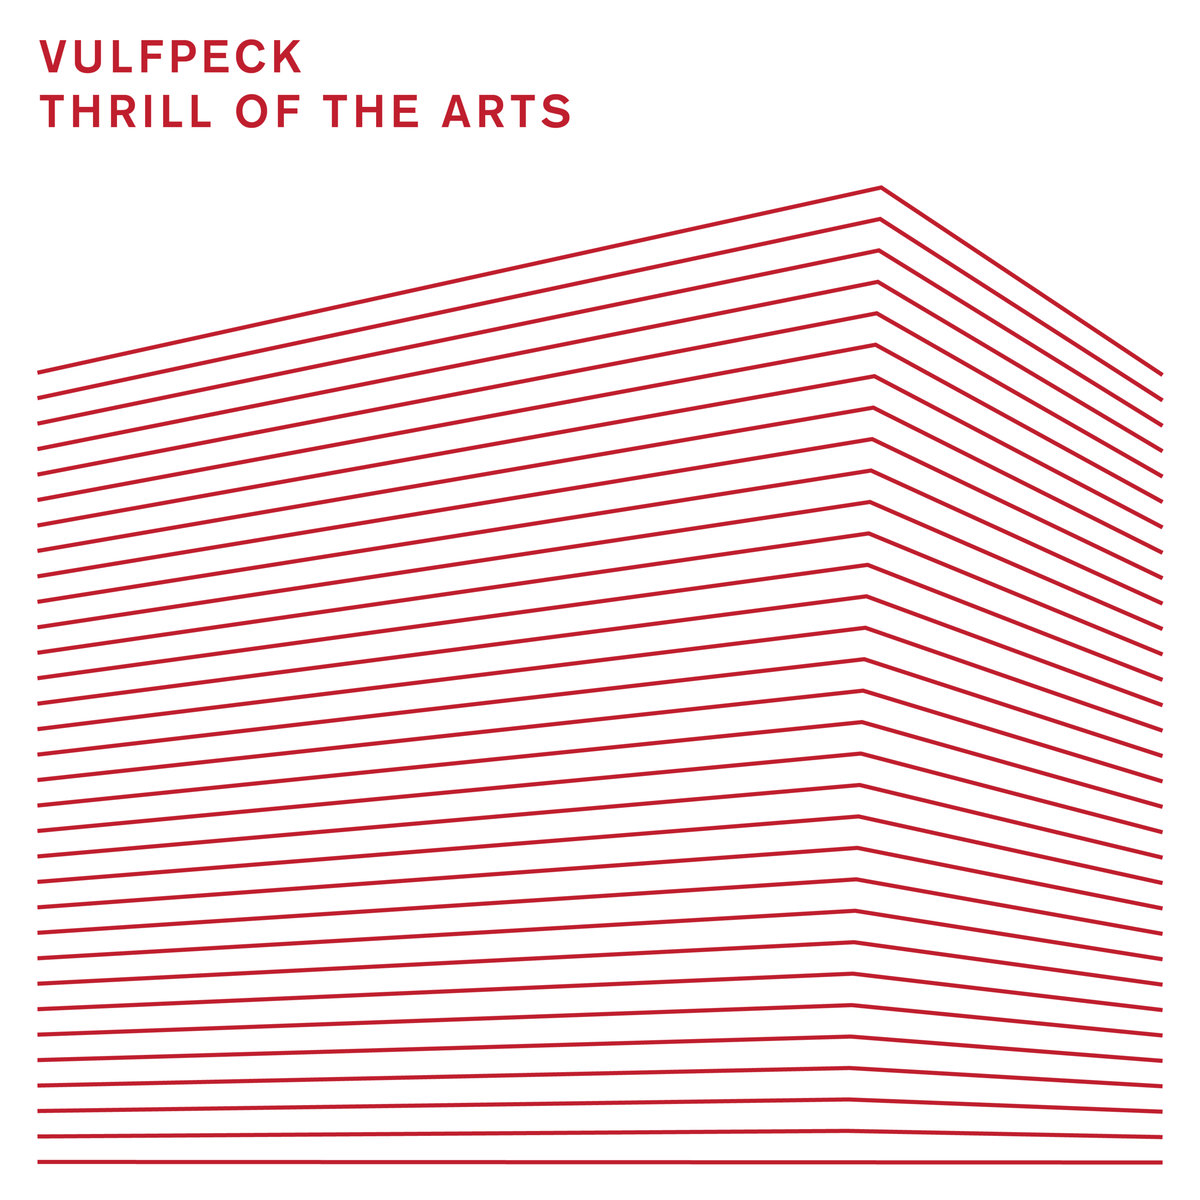 VULFPECK - THRILL OF THE ARTS (VULF RECORDS, 2015)